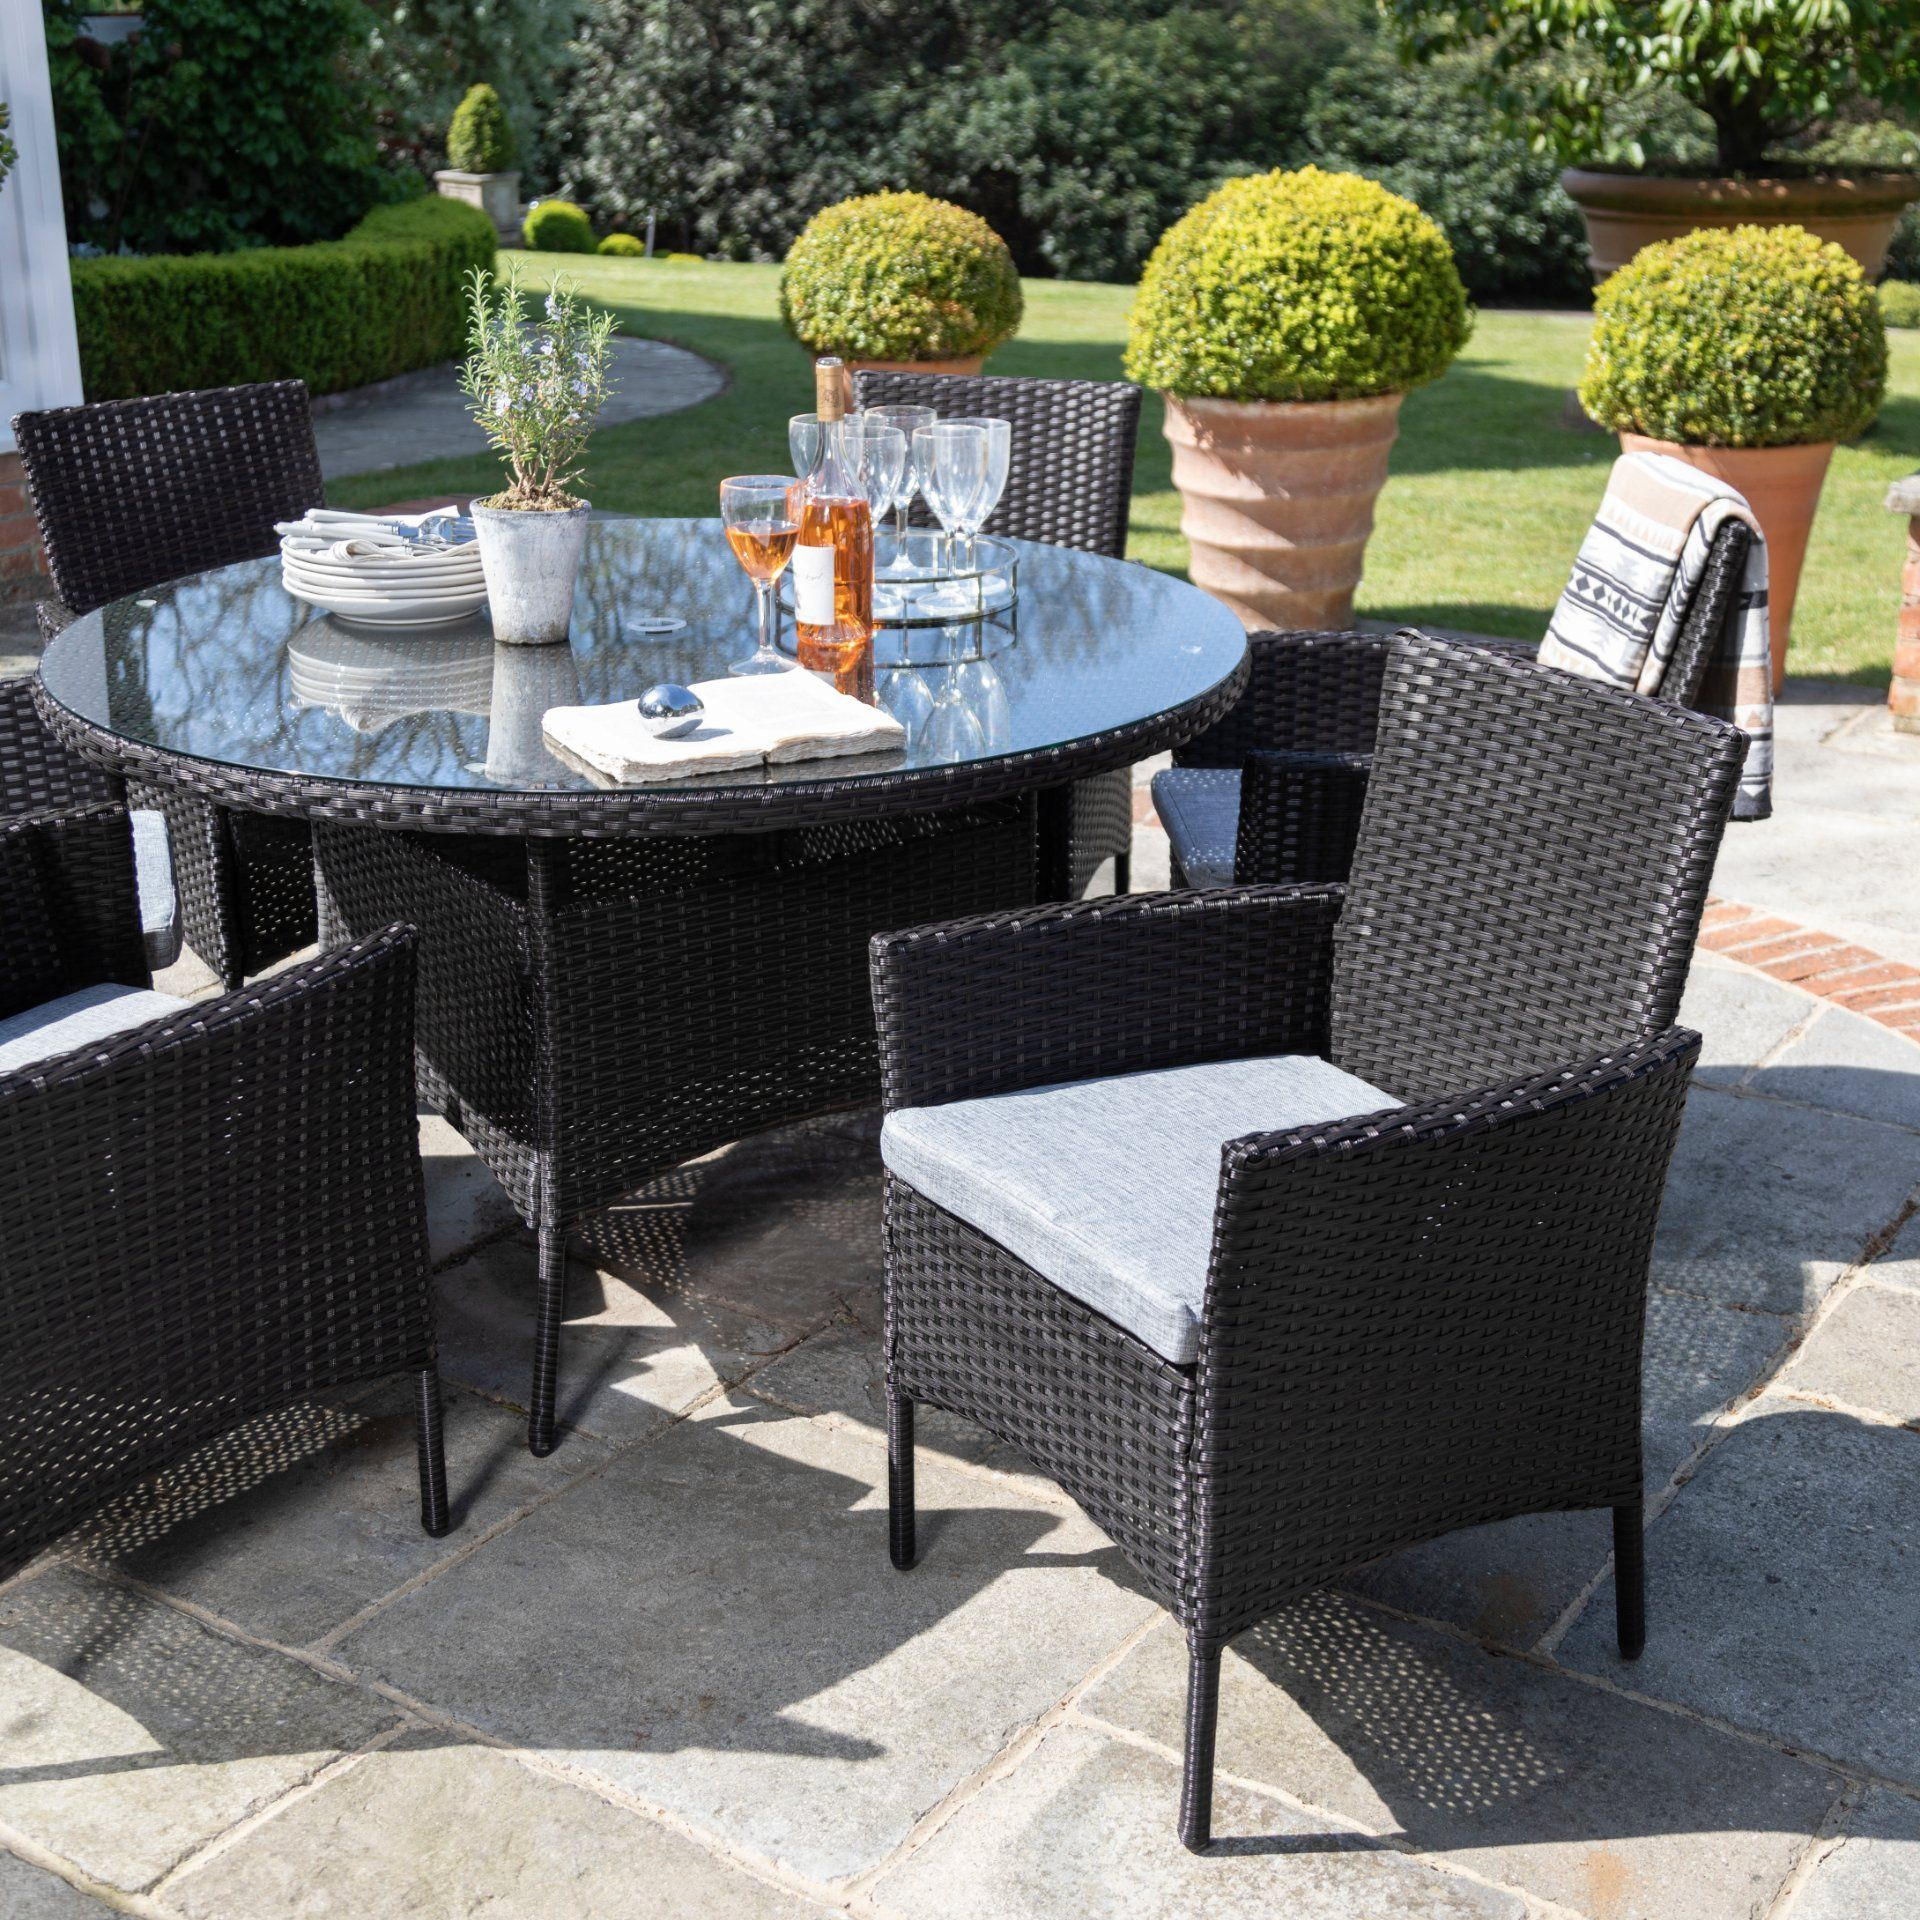 9 Seater Rattan Round Dining Table Set in Black - Garden Furniture